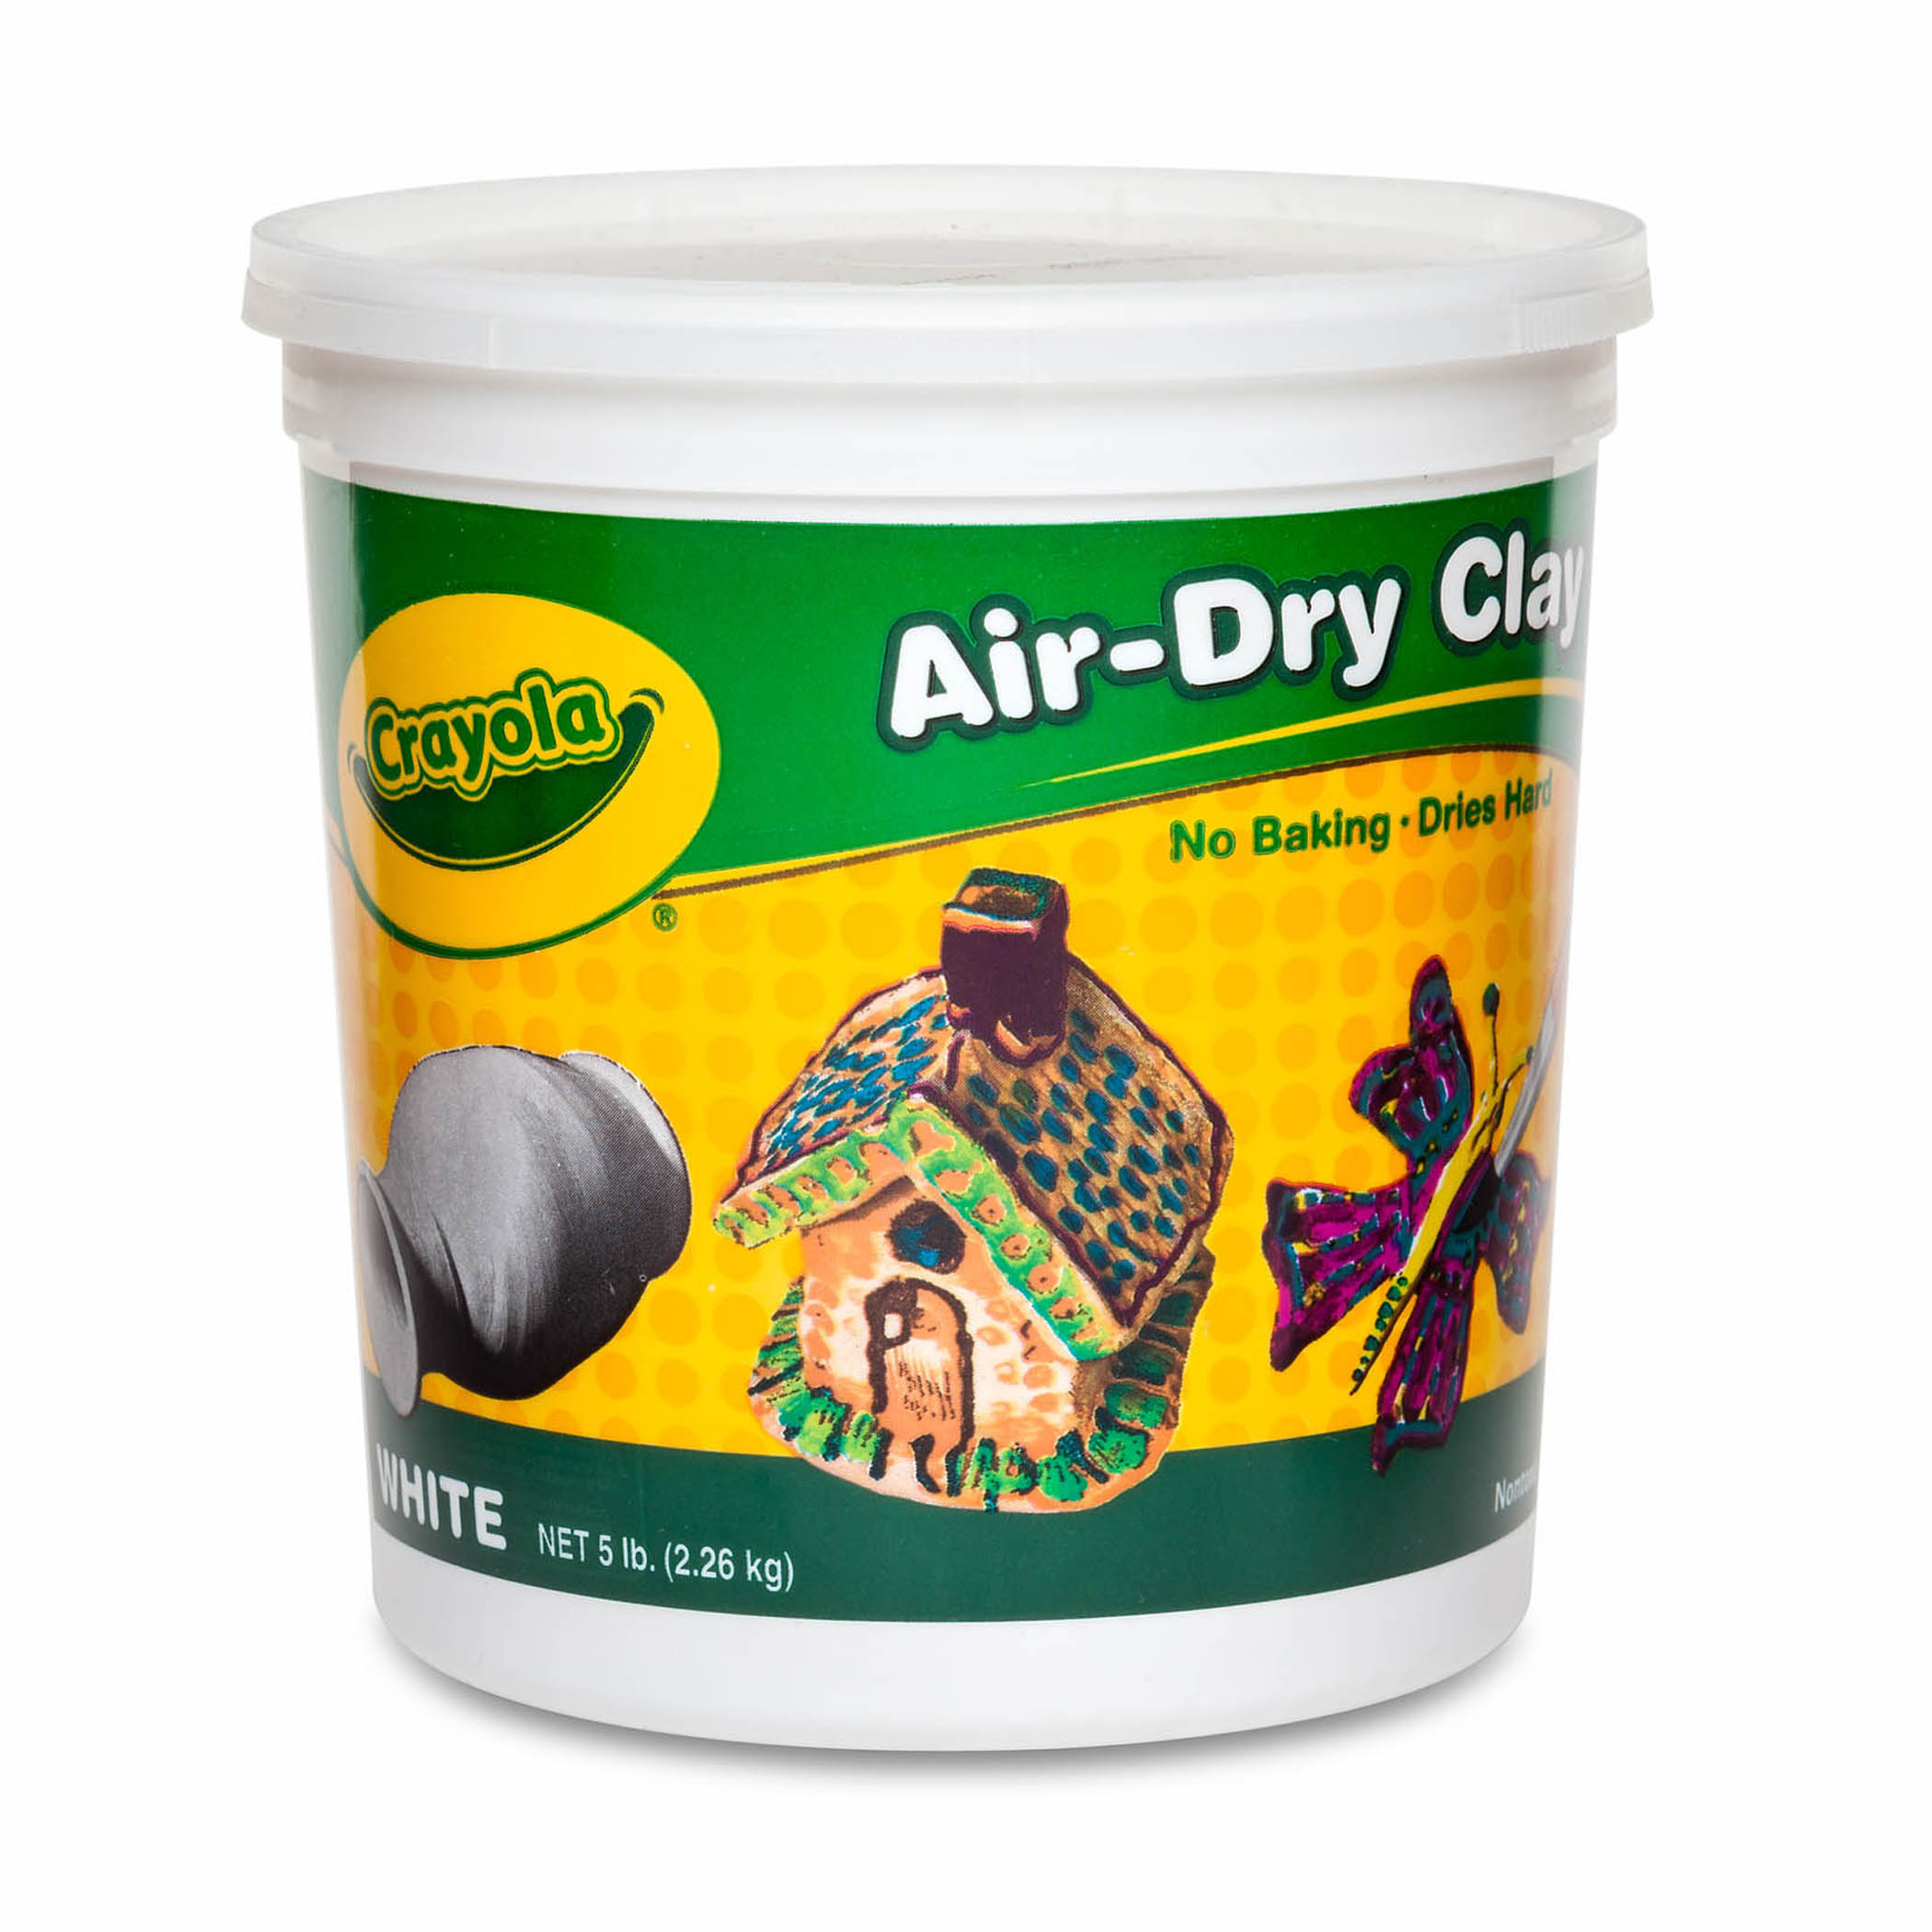 Crayola® Air-Dry Clay, White, 5 lb. Resealable Bucket